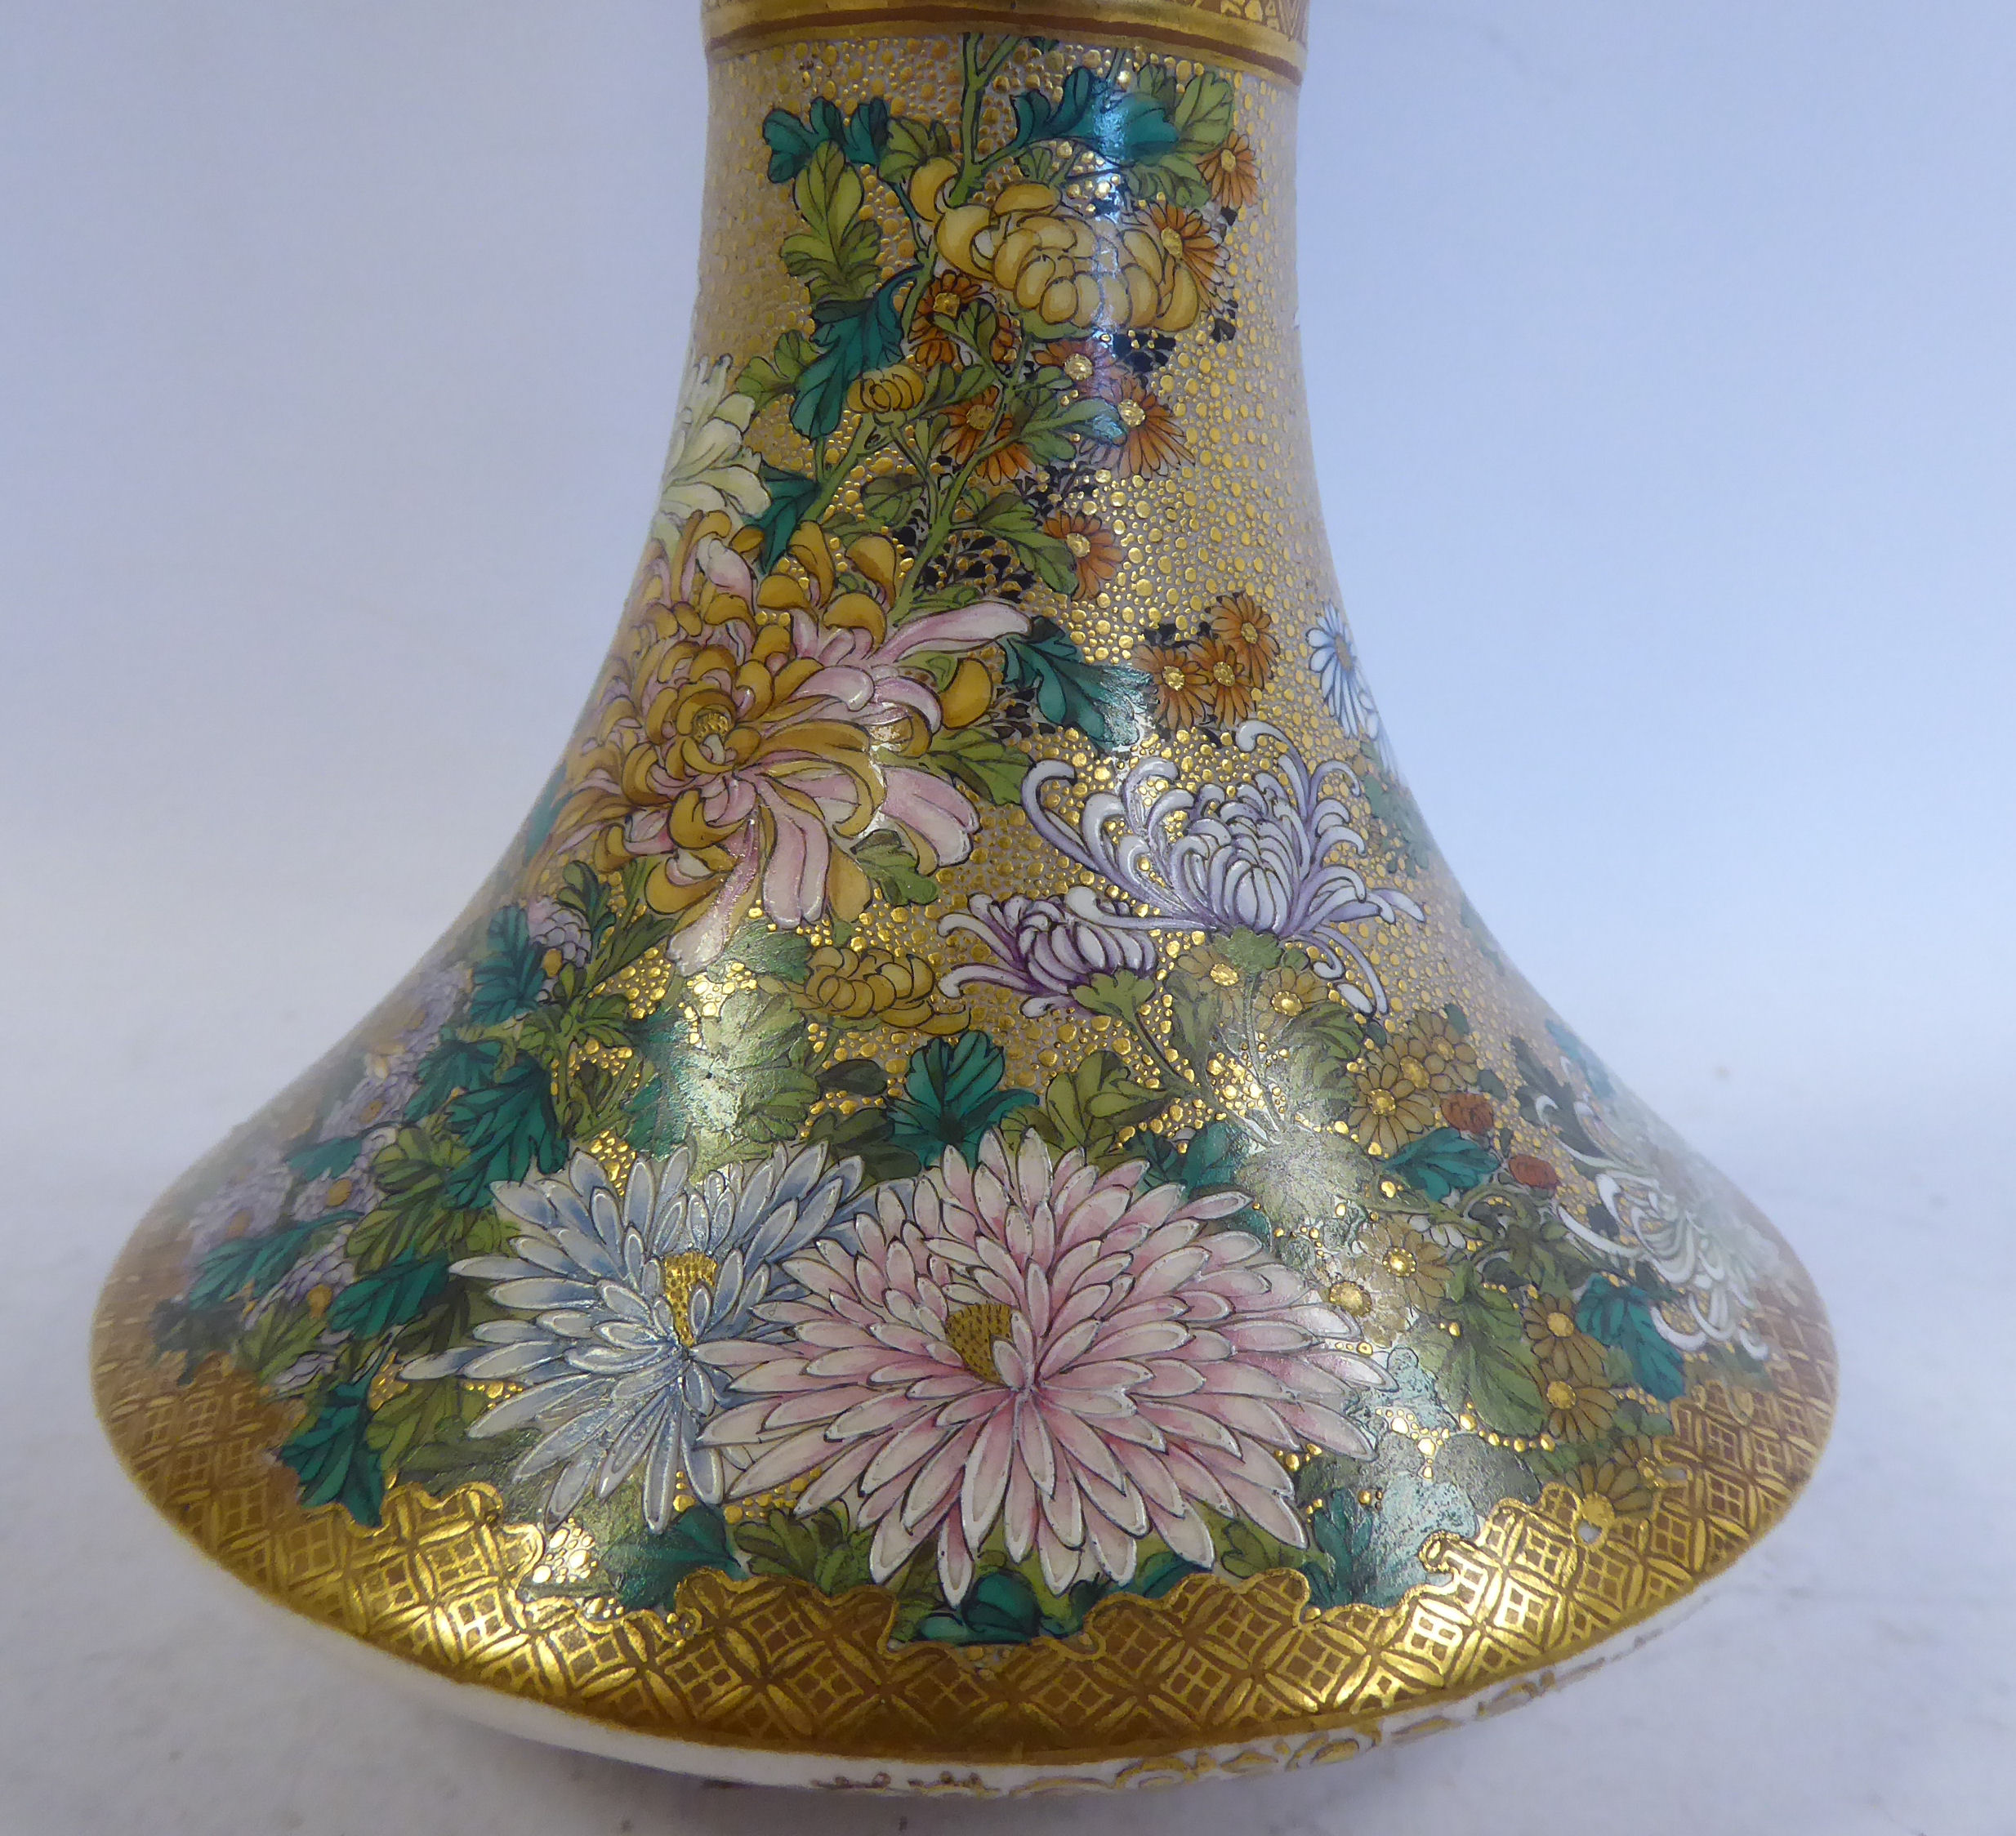 Lot 12 - A 20thC Satsuma floral decorated and gilded earthenware vase of waisted form with a wide neck and